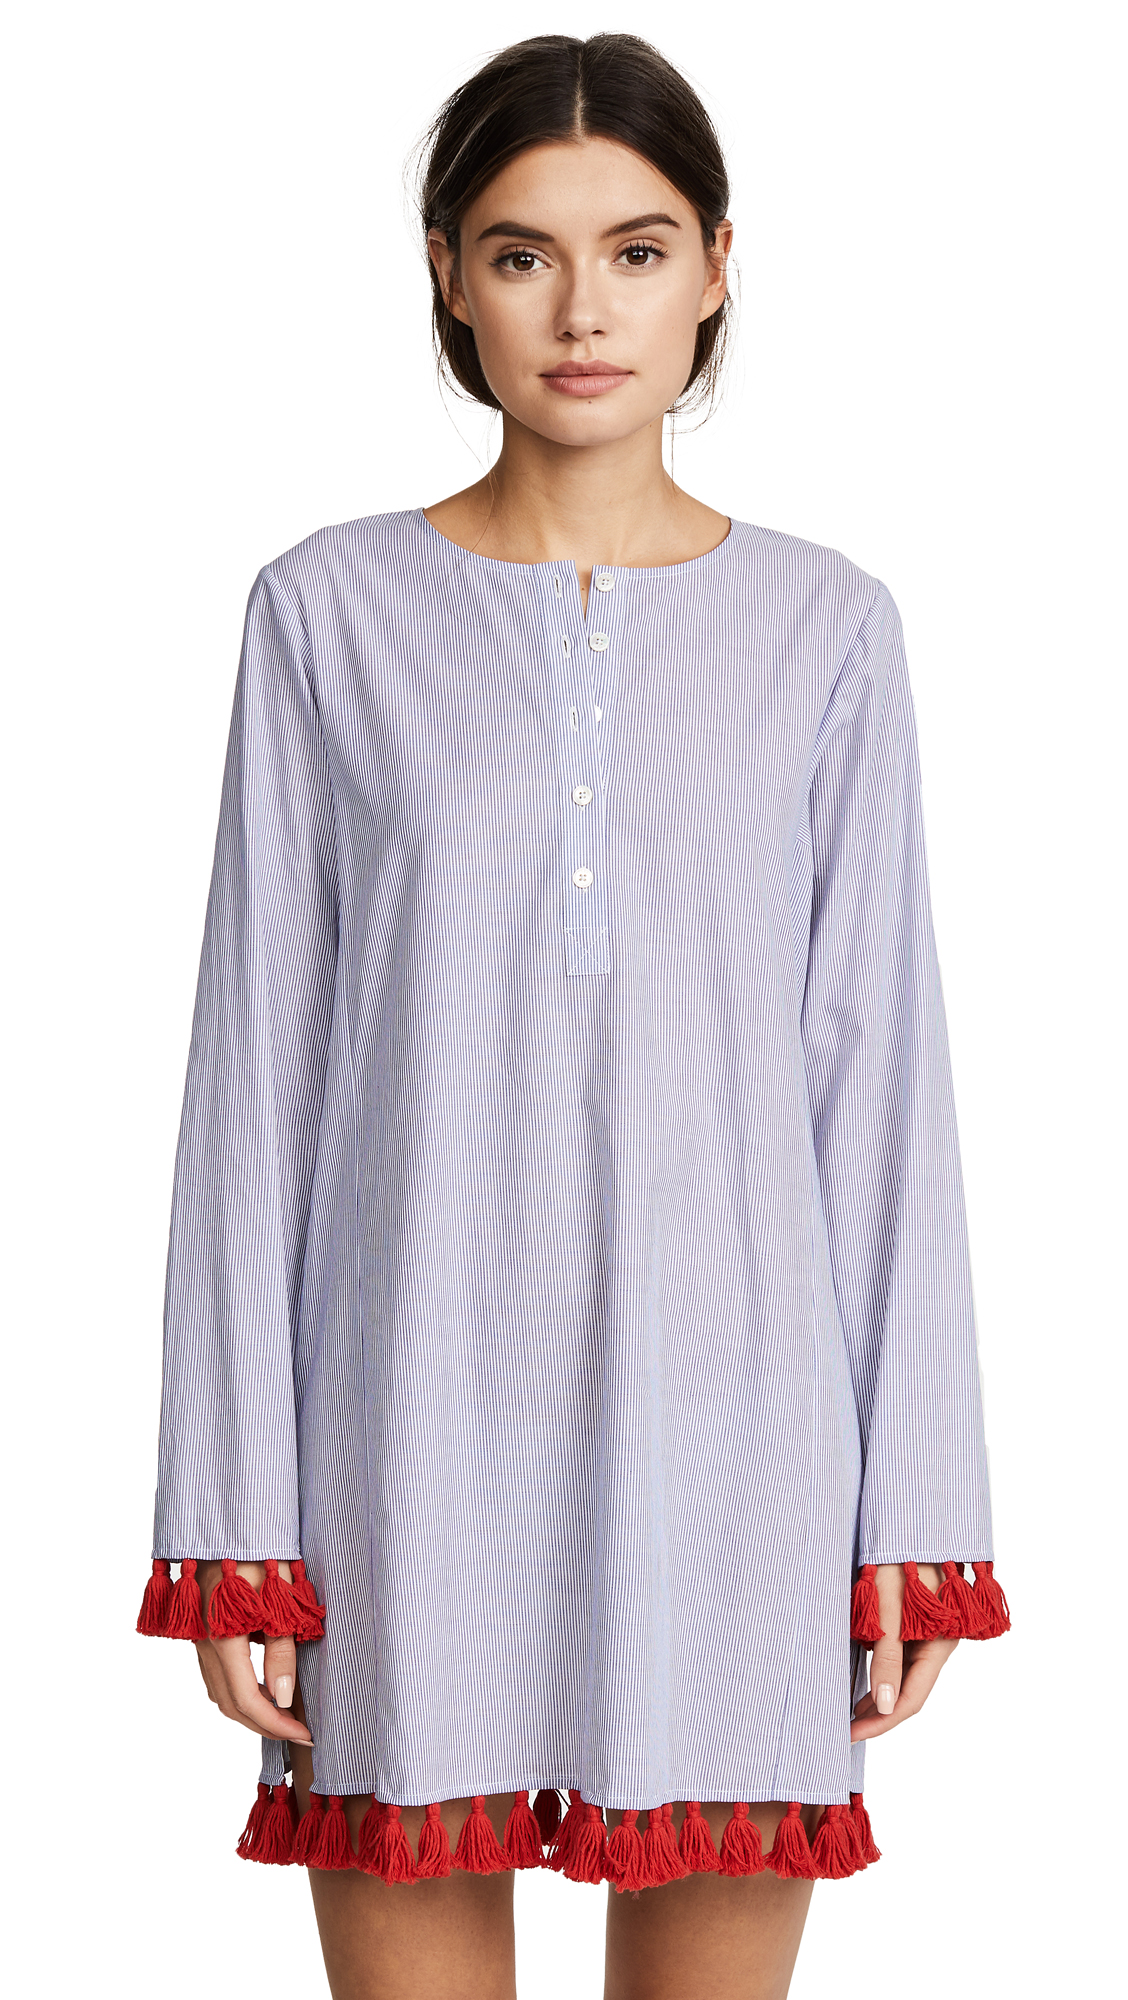 Tory Burch Tassel Cover Up Tunic